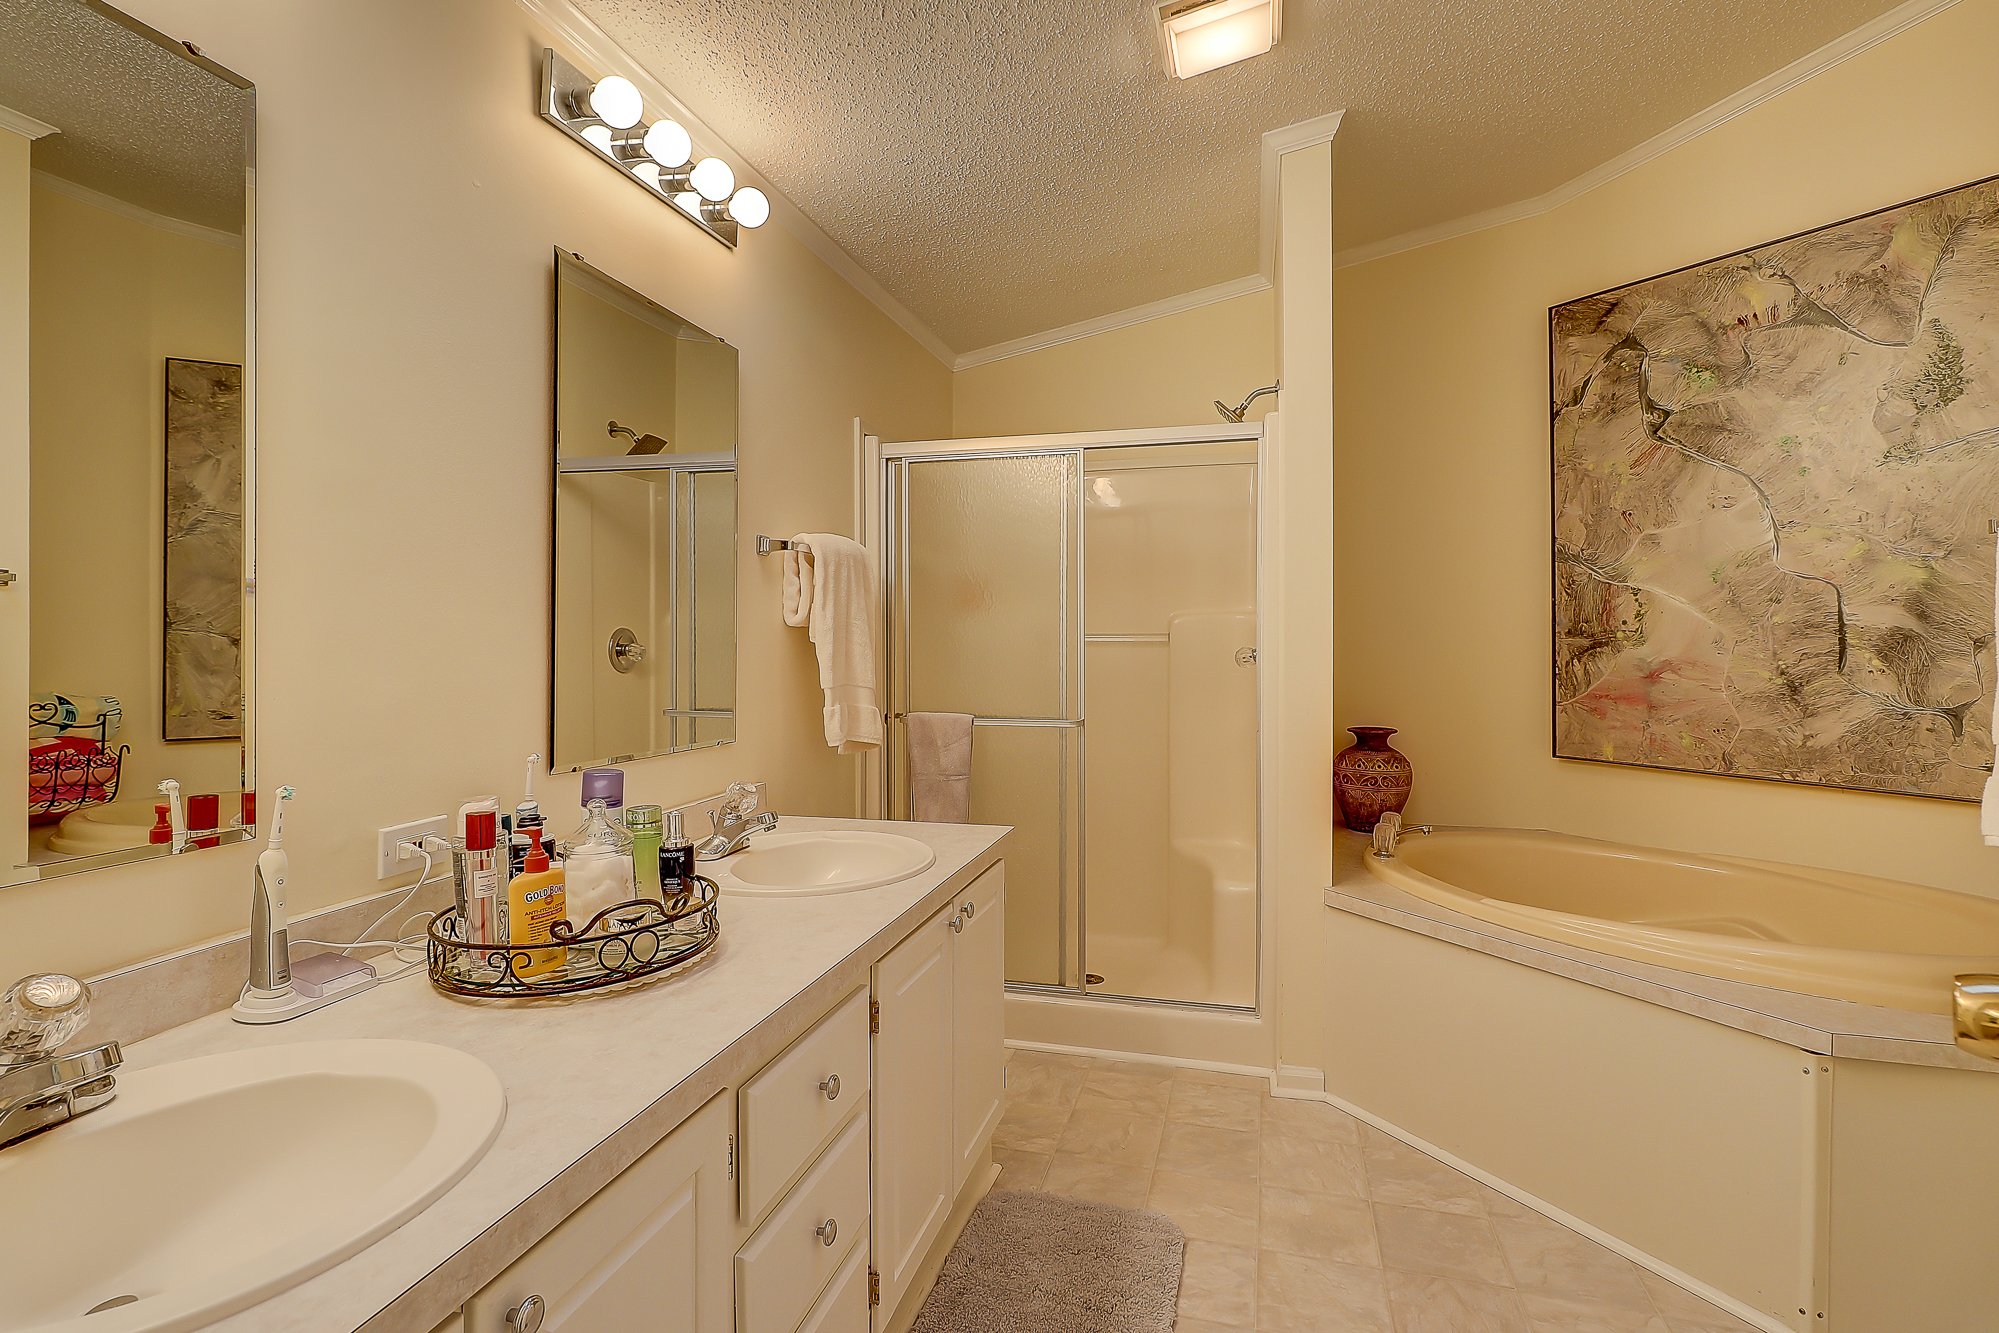 Master Bathroom with a Dressing Area, Makeup Stand, Double Vanity, Garden Tub and Separate Shower.